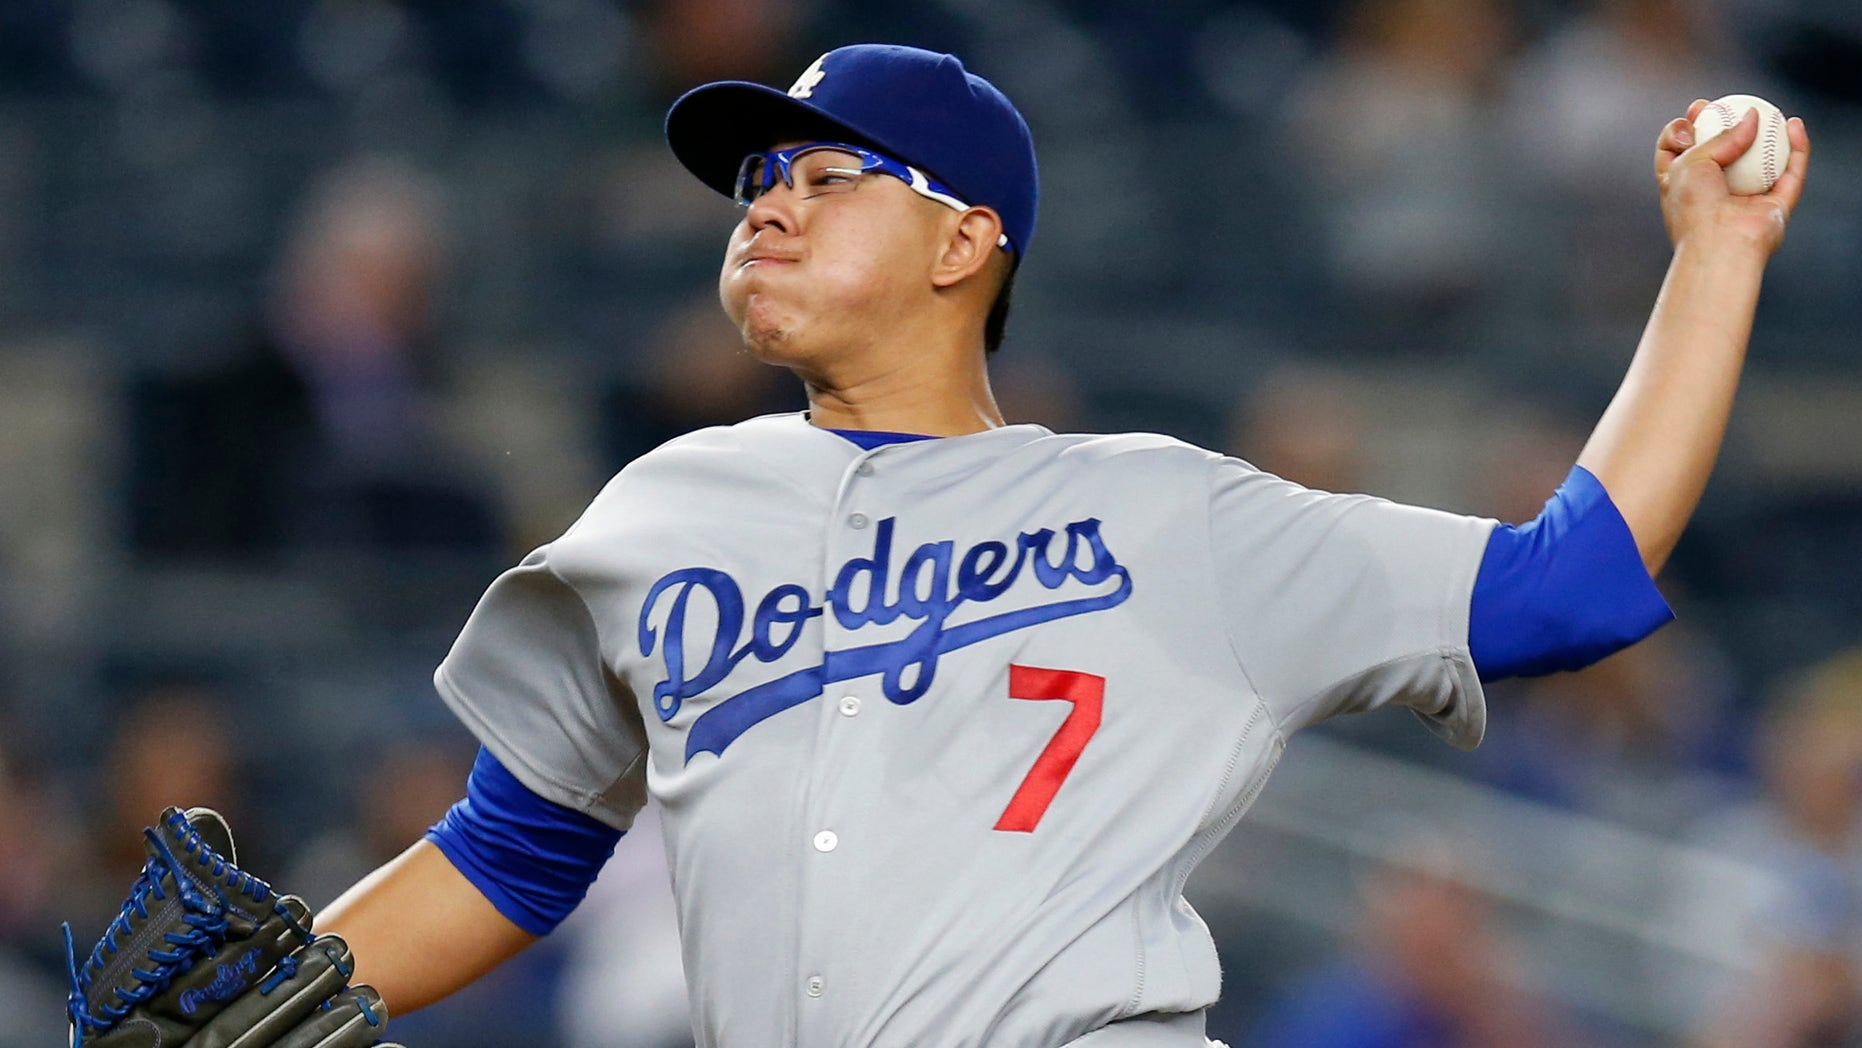 Dodgers starting pitcher Julio Urias in a Sept. 13, 2016 file photo.